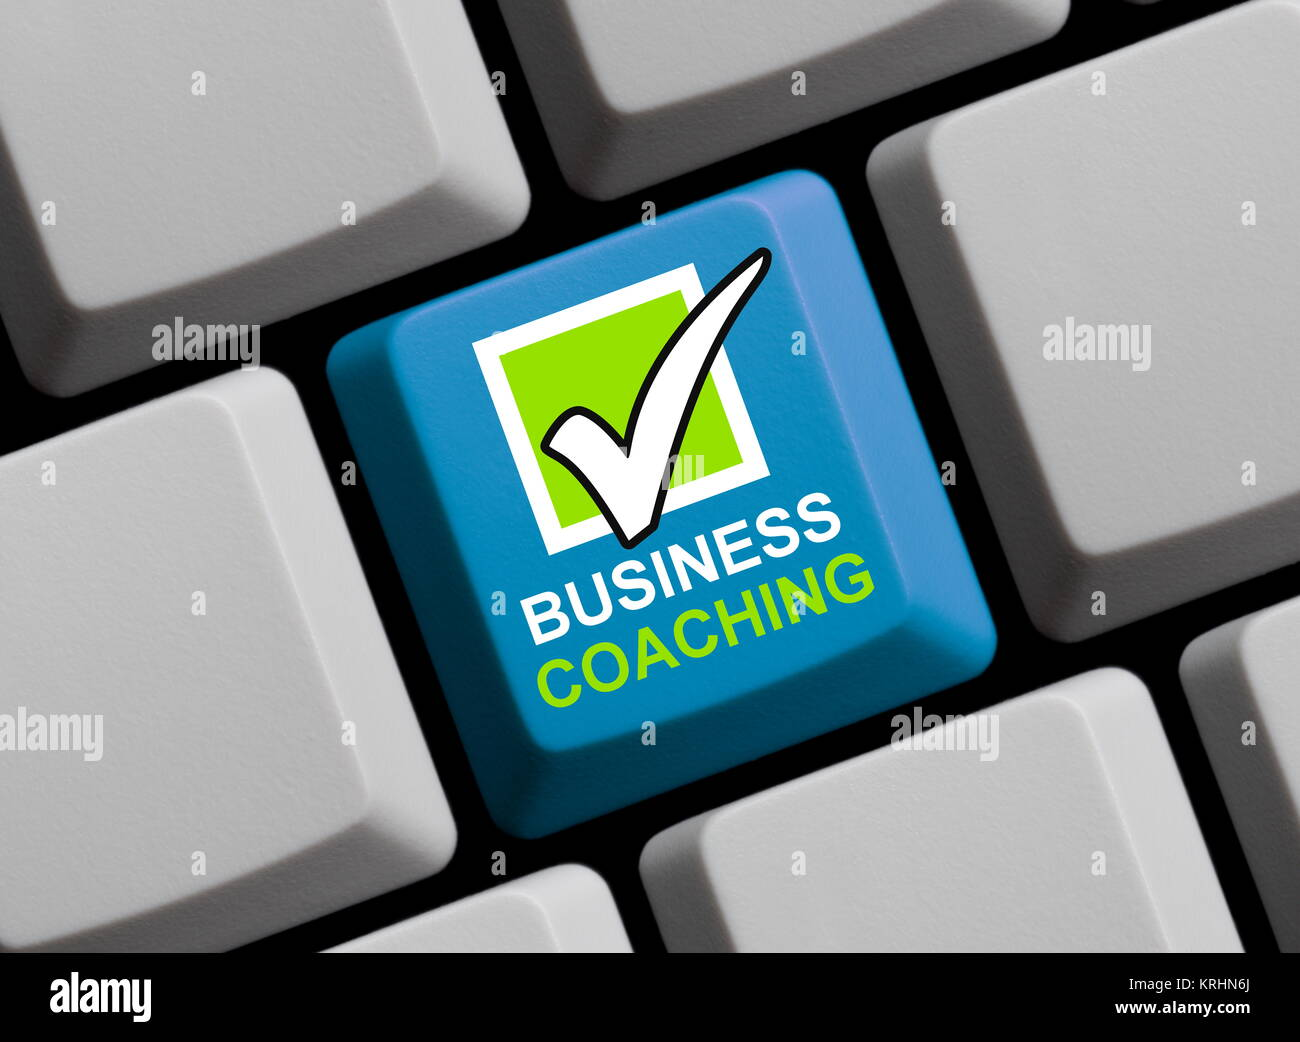 business coaching online - Stock Image